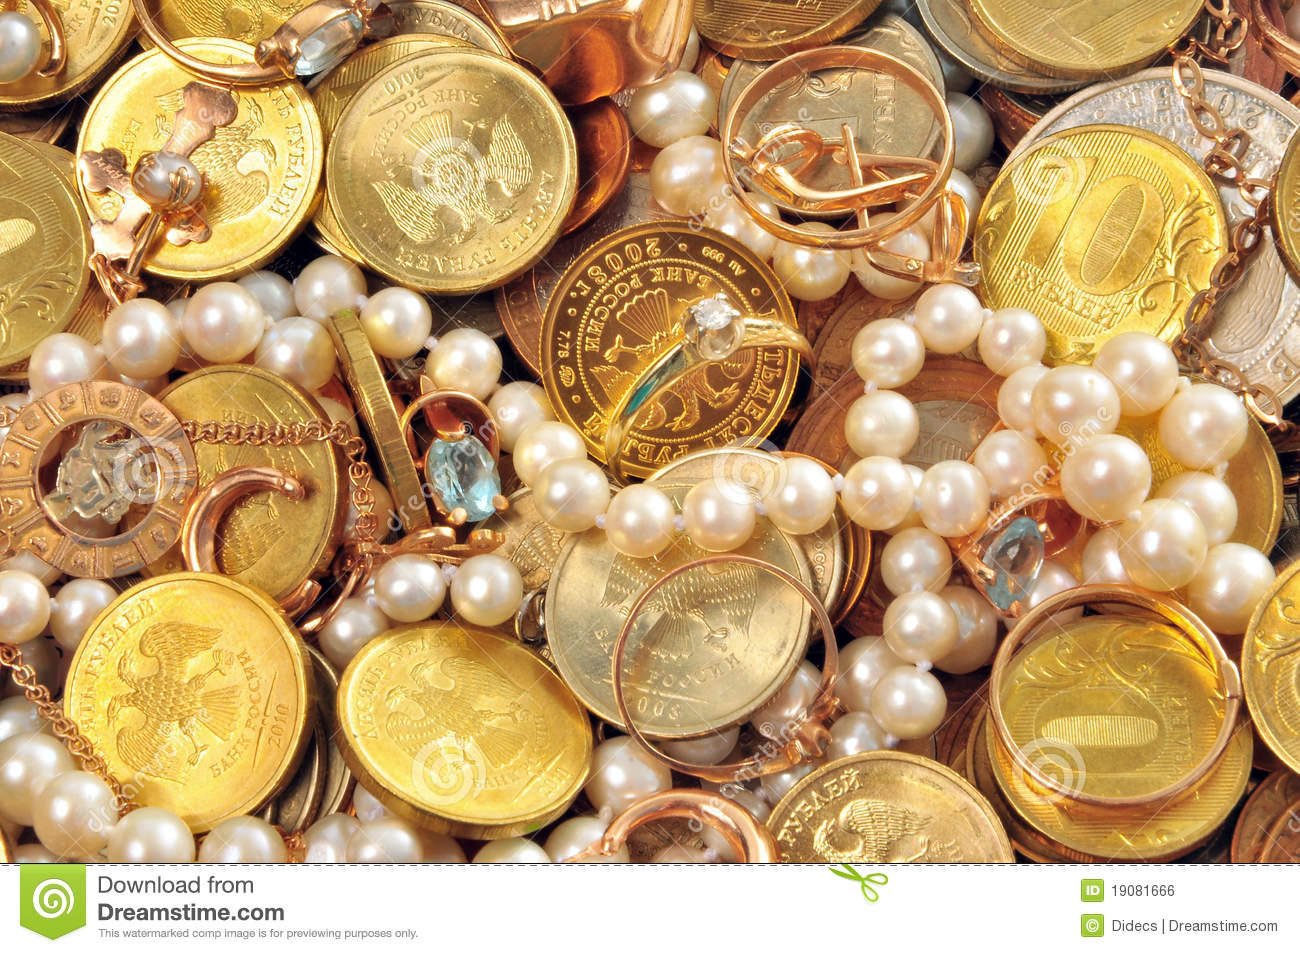 Money and valuable royalty free stock image image 19081666 for Valuable items to sell